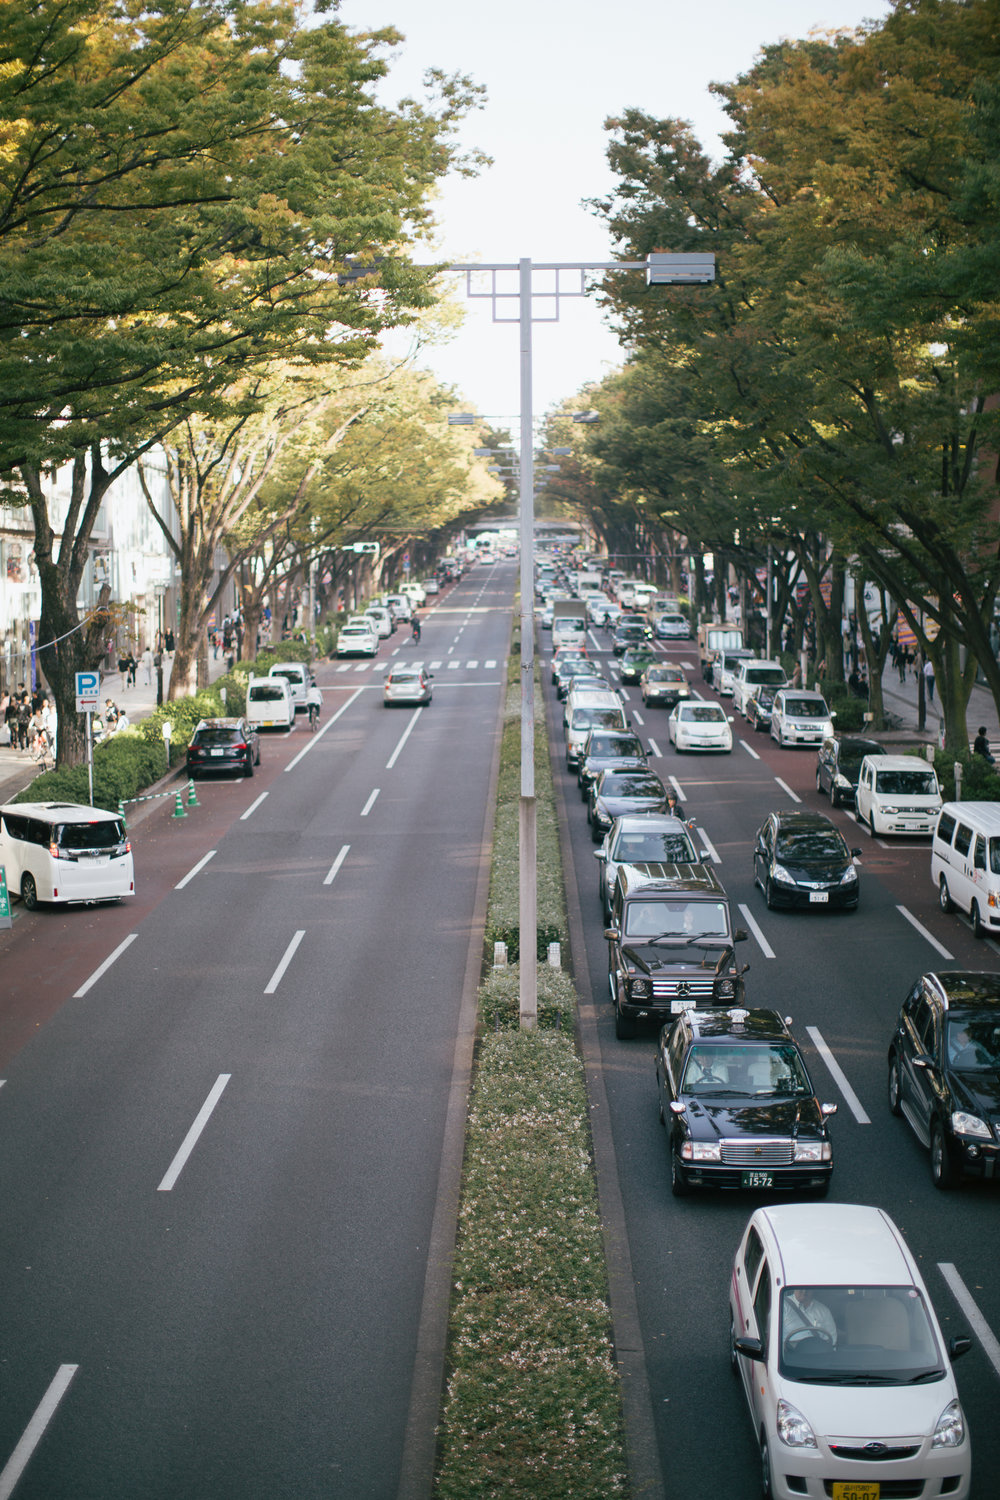 [Click to enlarge] Luxury brands and trees line Omotesando in one of the most iconic views around Tokyo. Traffic jams going in one direction heading from Aoyama towards Harajuku.